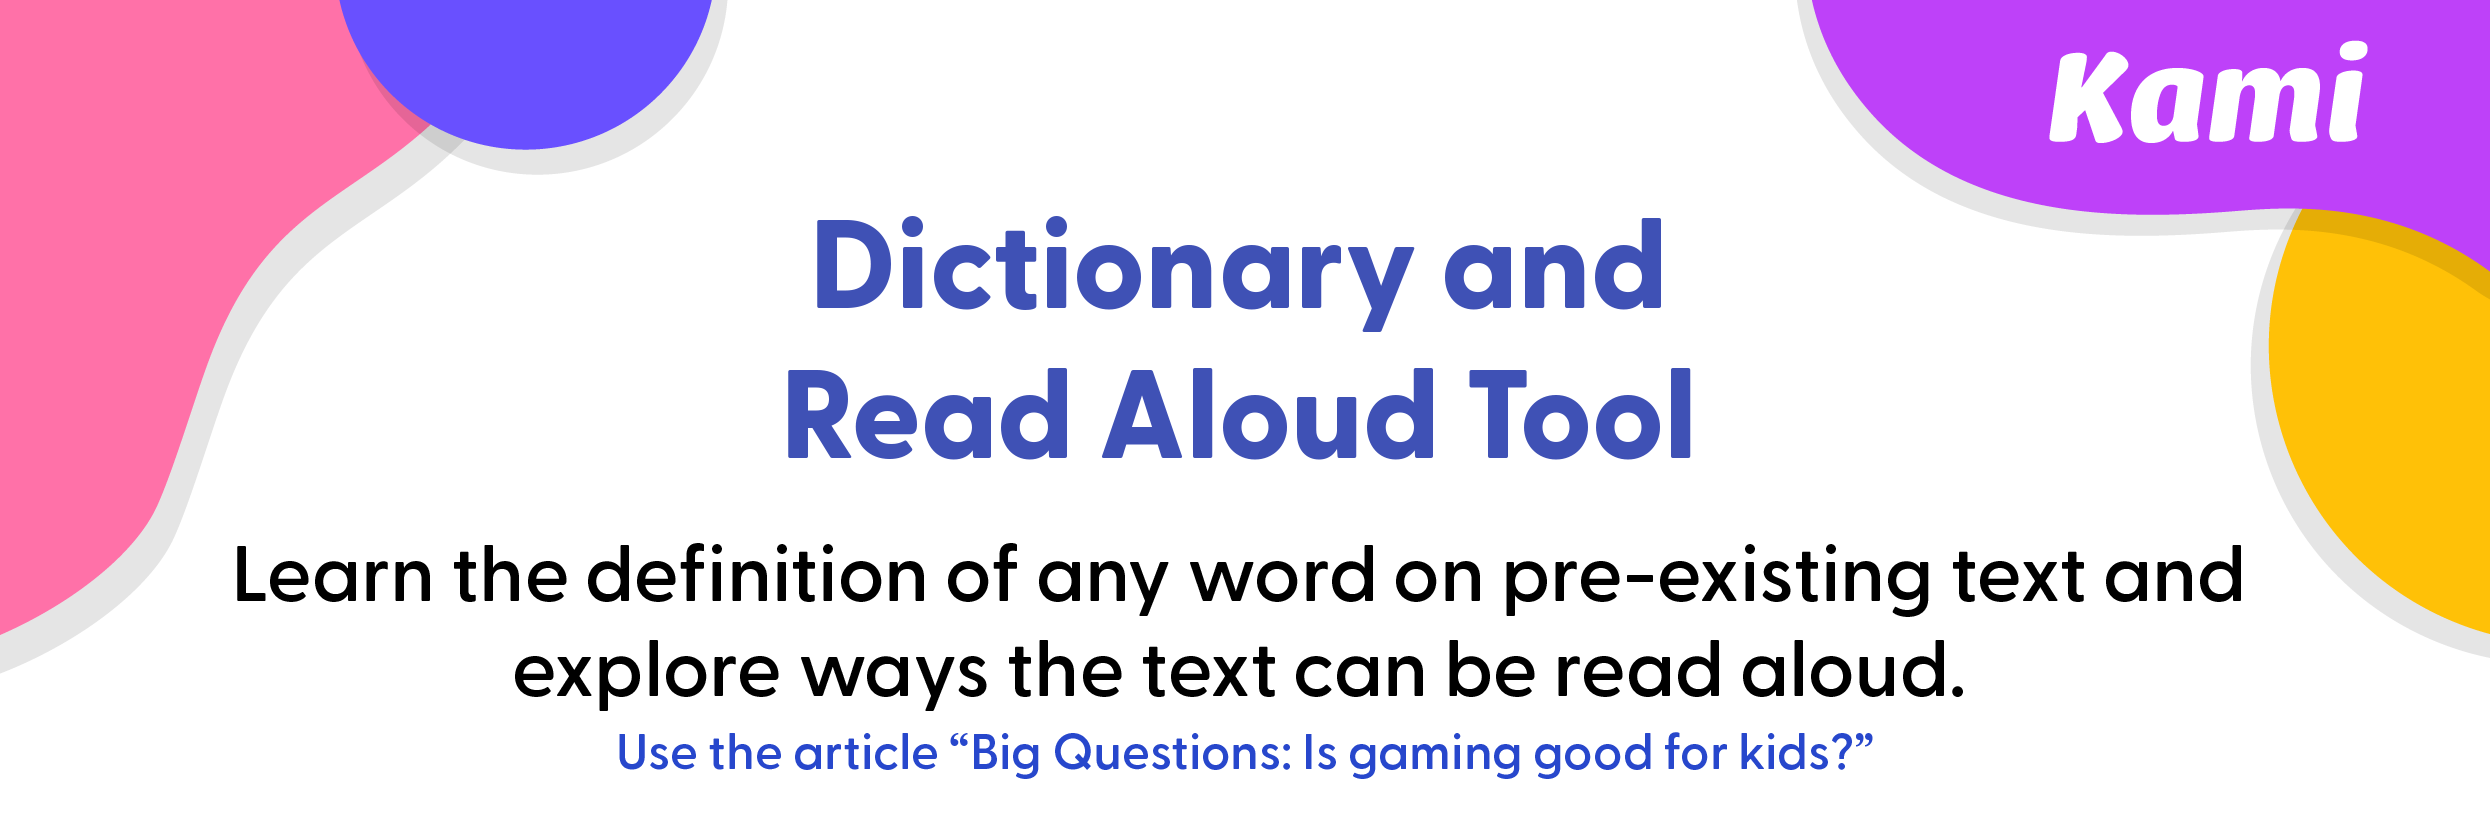 Dictionary and Read Aloud Tool Preview 1